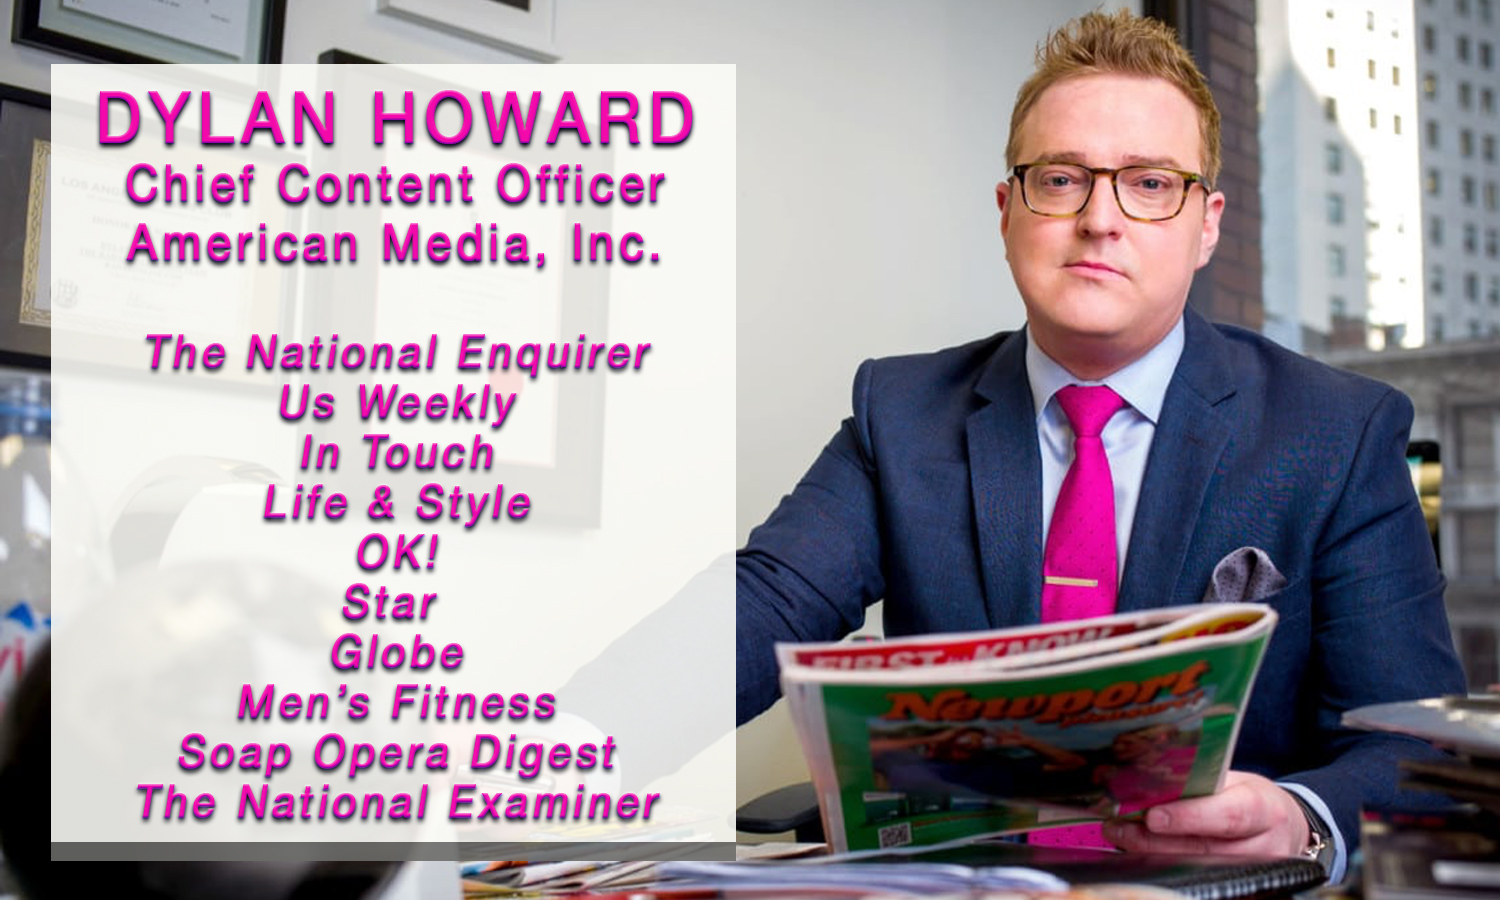 Dylan Howard, Chief Content Officer at American Media, Inc. -- Publisher of The National Enquirer, Us Weekly, In Touch, Life & Style, OK!, Star, Globe, Men's Fitness, Soap Opera Digest, and The National Examiner